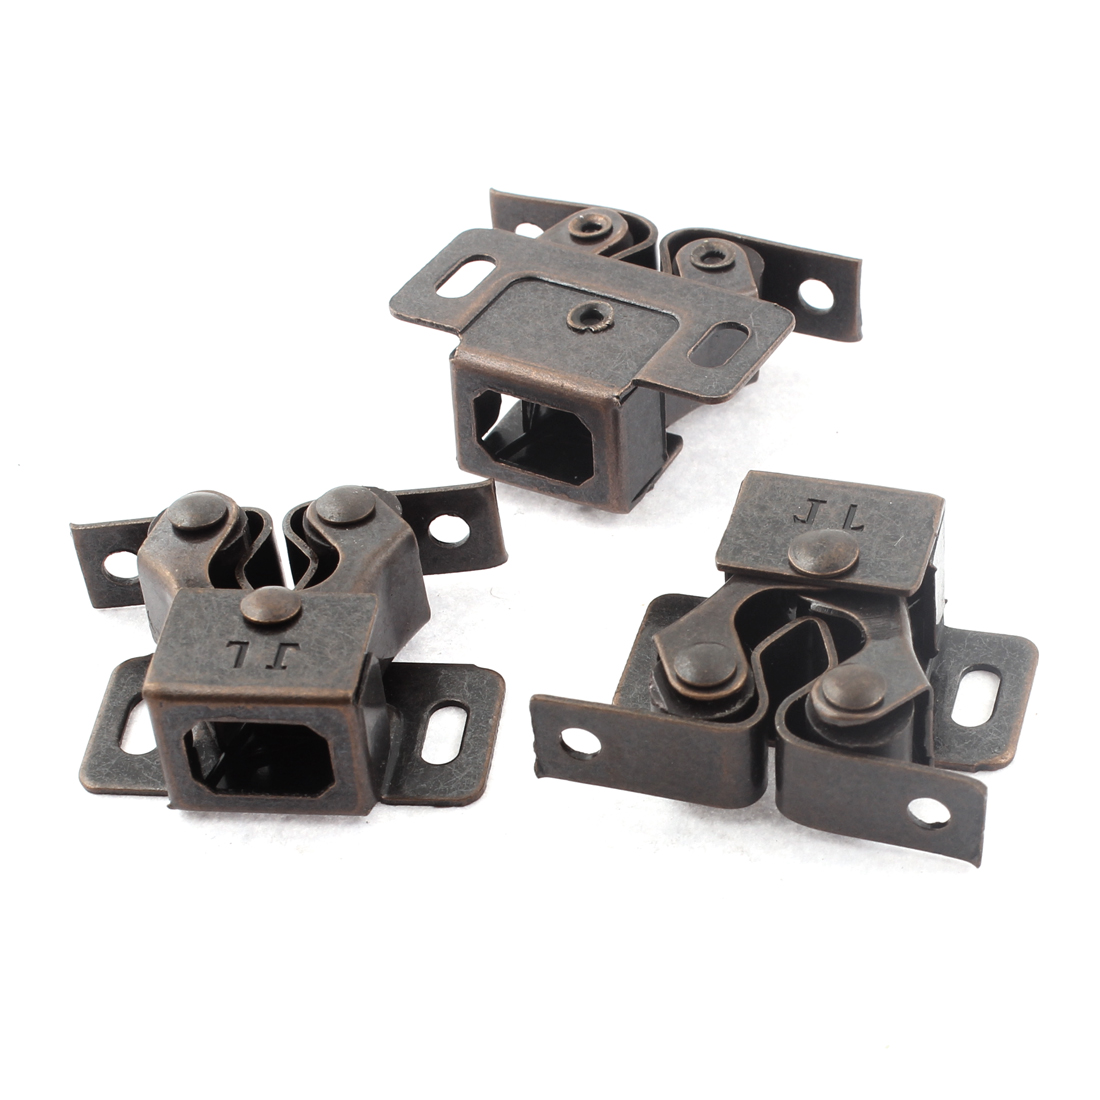 3pcs Retro Style Metal Furniture Cabinet Door Window Magnetic Catch Stop Stopper Latch Holder